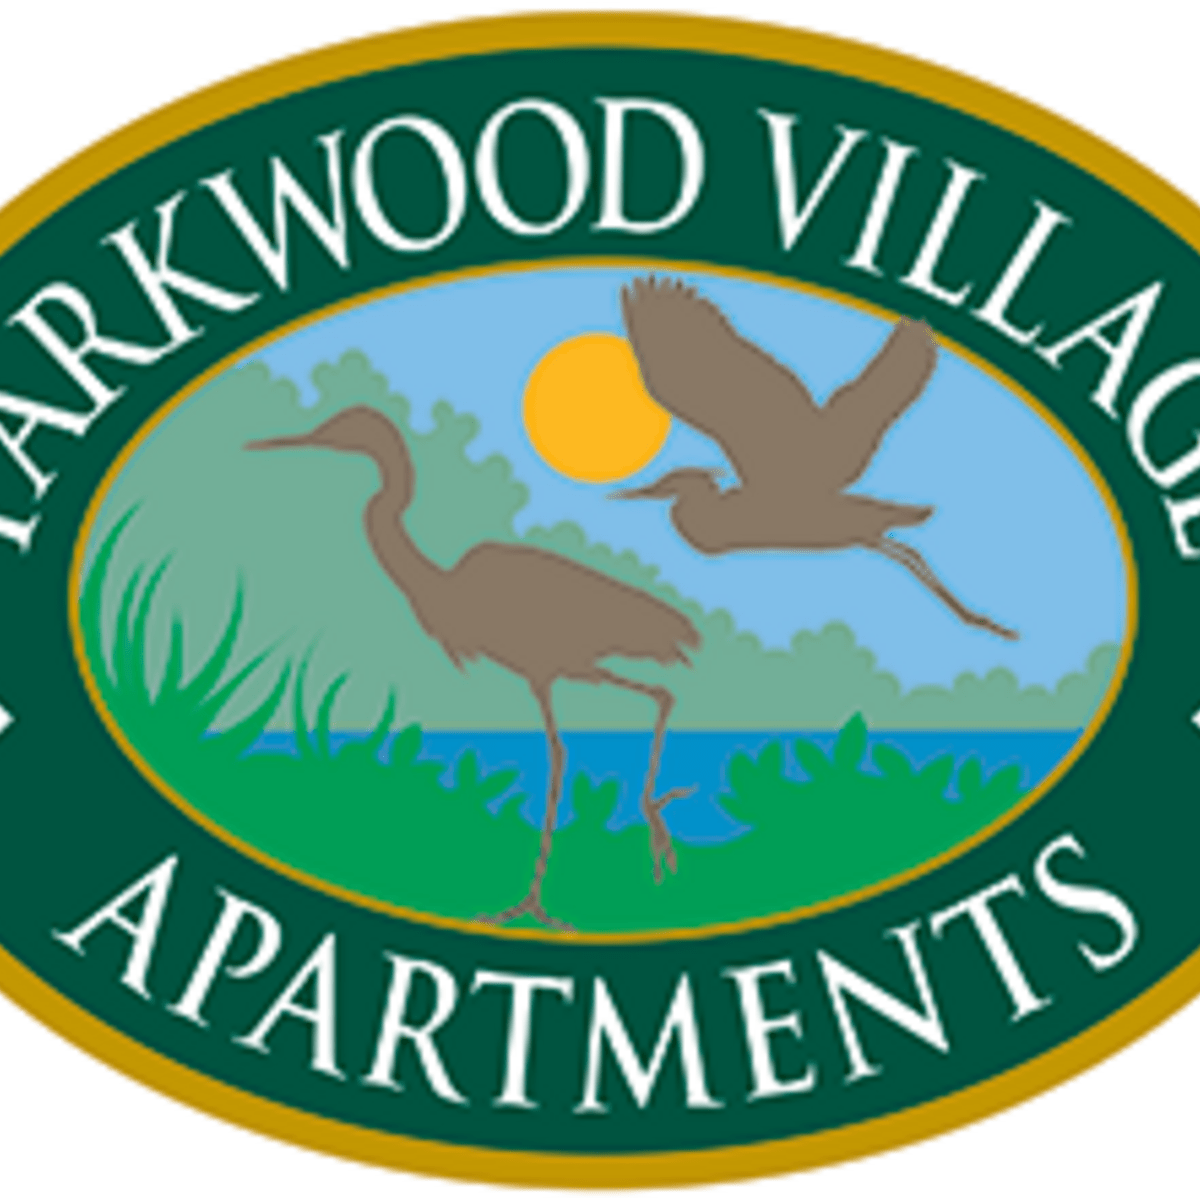 Parkwood Village Apartments: Contact Us Parkwood Village Apartments